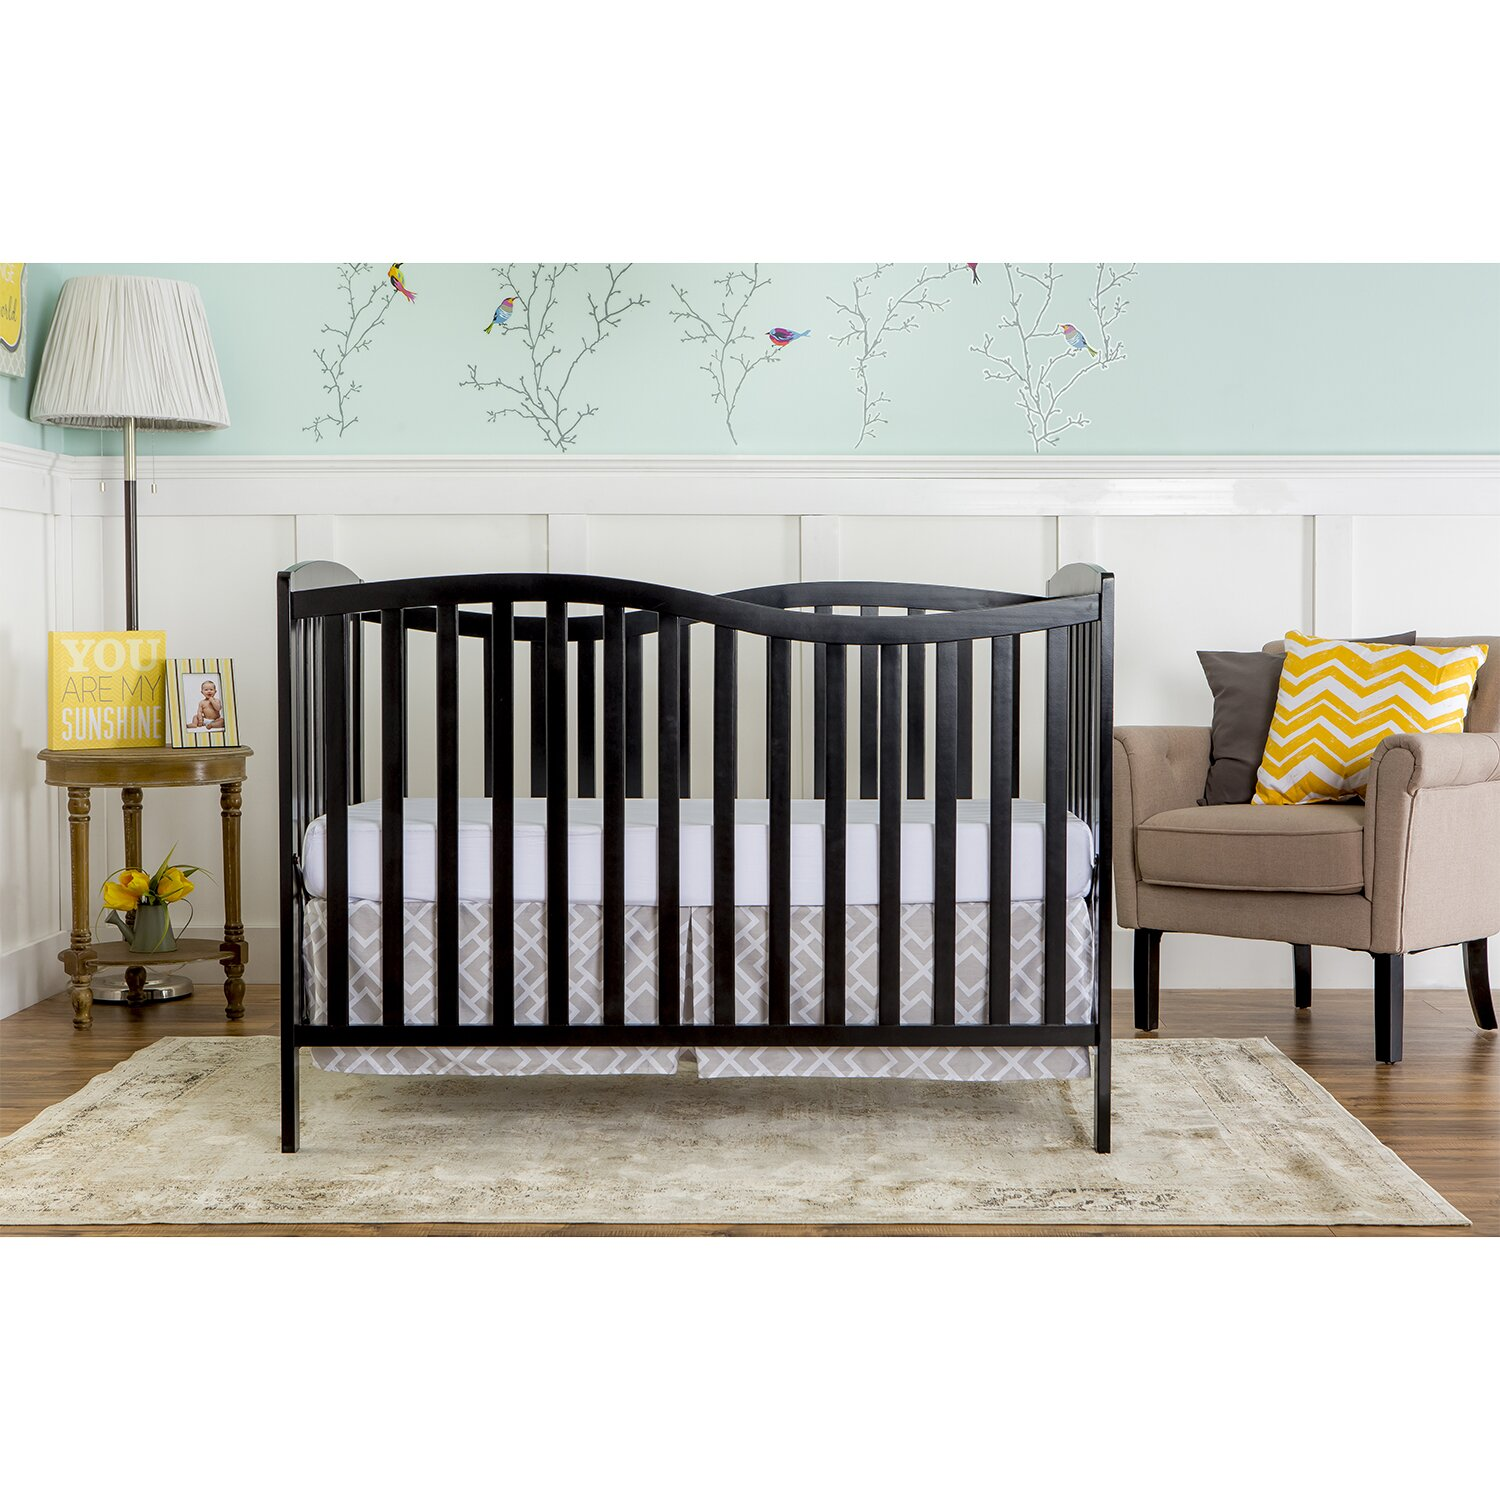 Chelsea Convertible Crib Chelsea 5 In 1 Convertible Crib